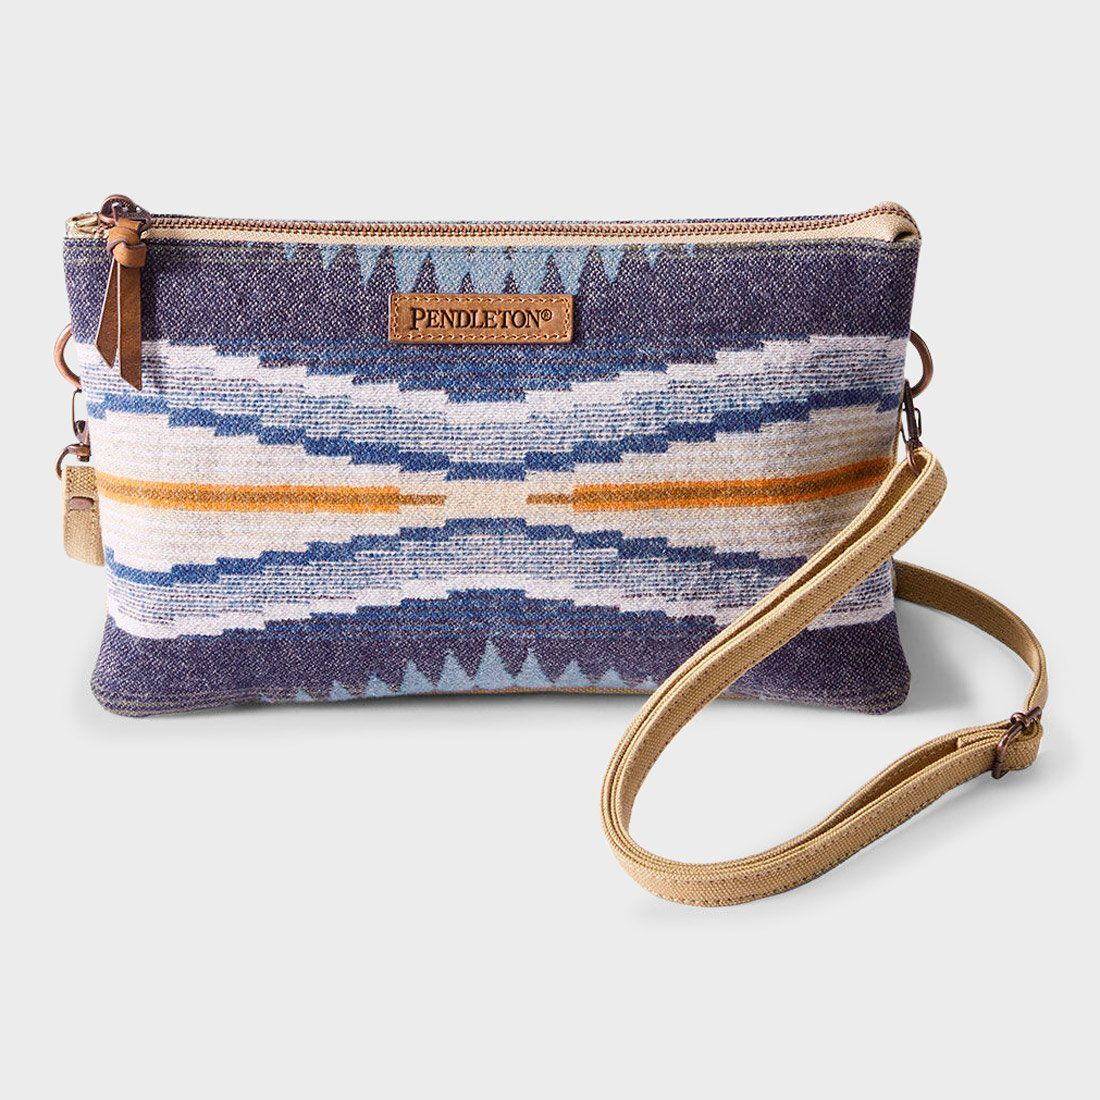 Pendleton Large Three Pocket Keeper Crescent Bay